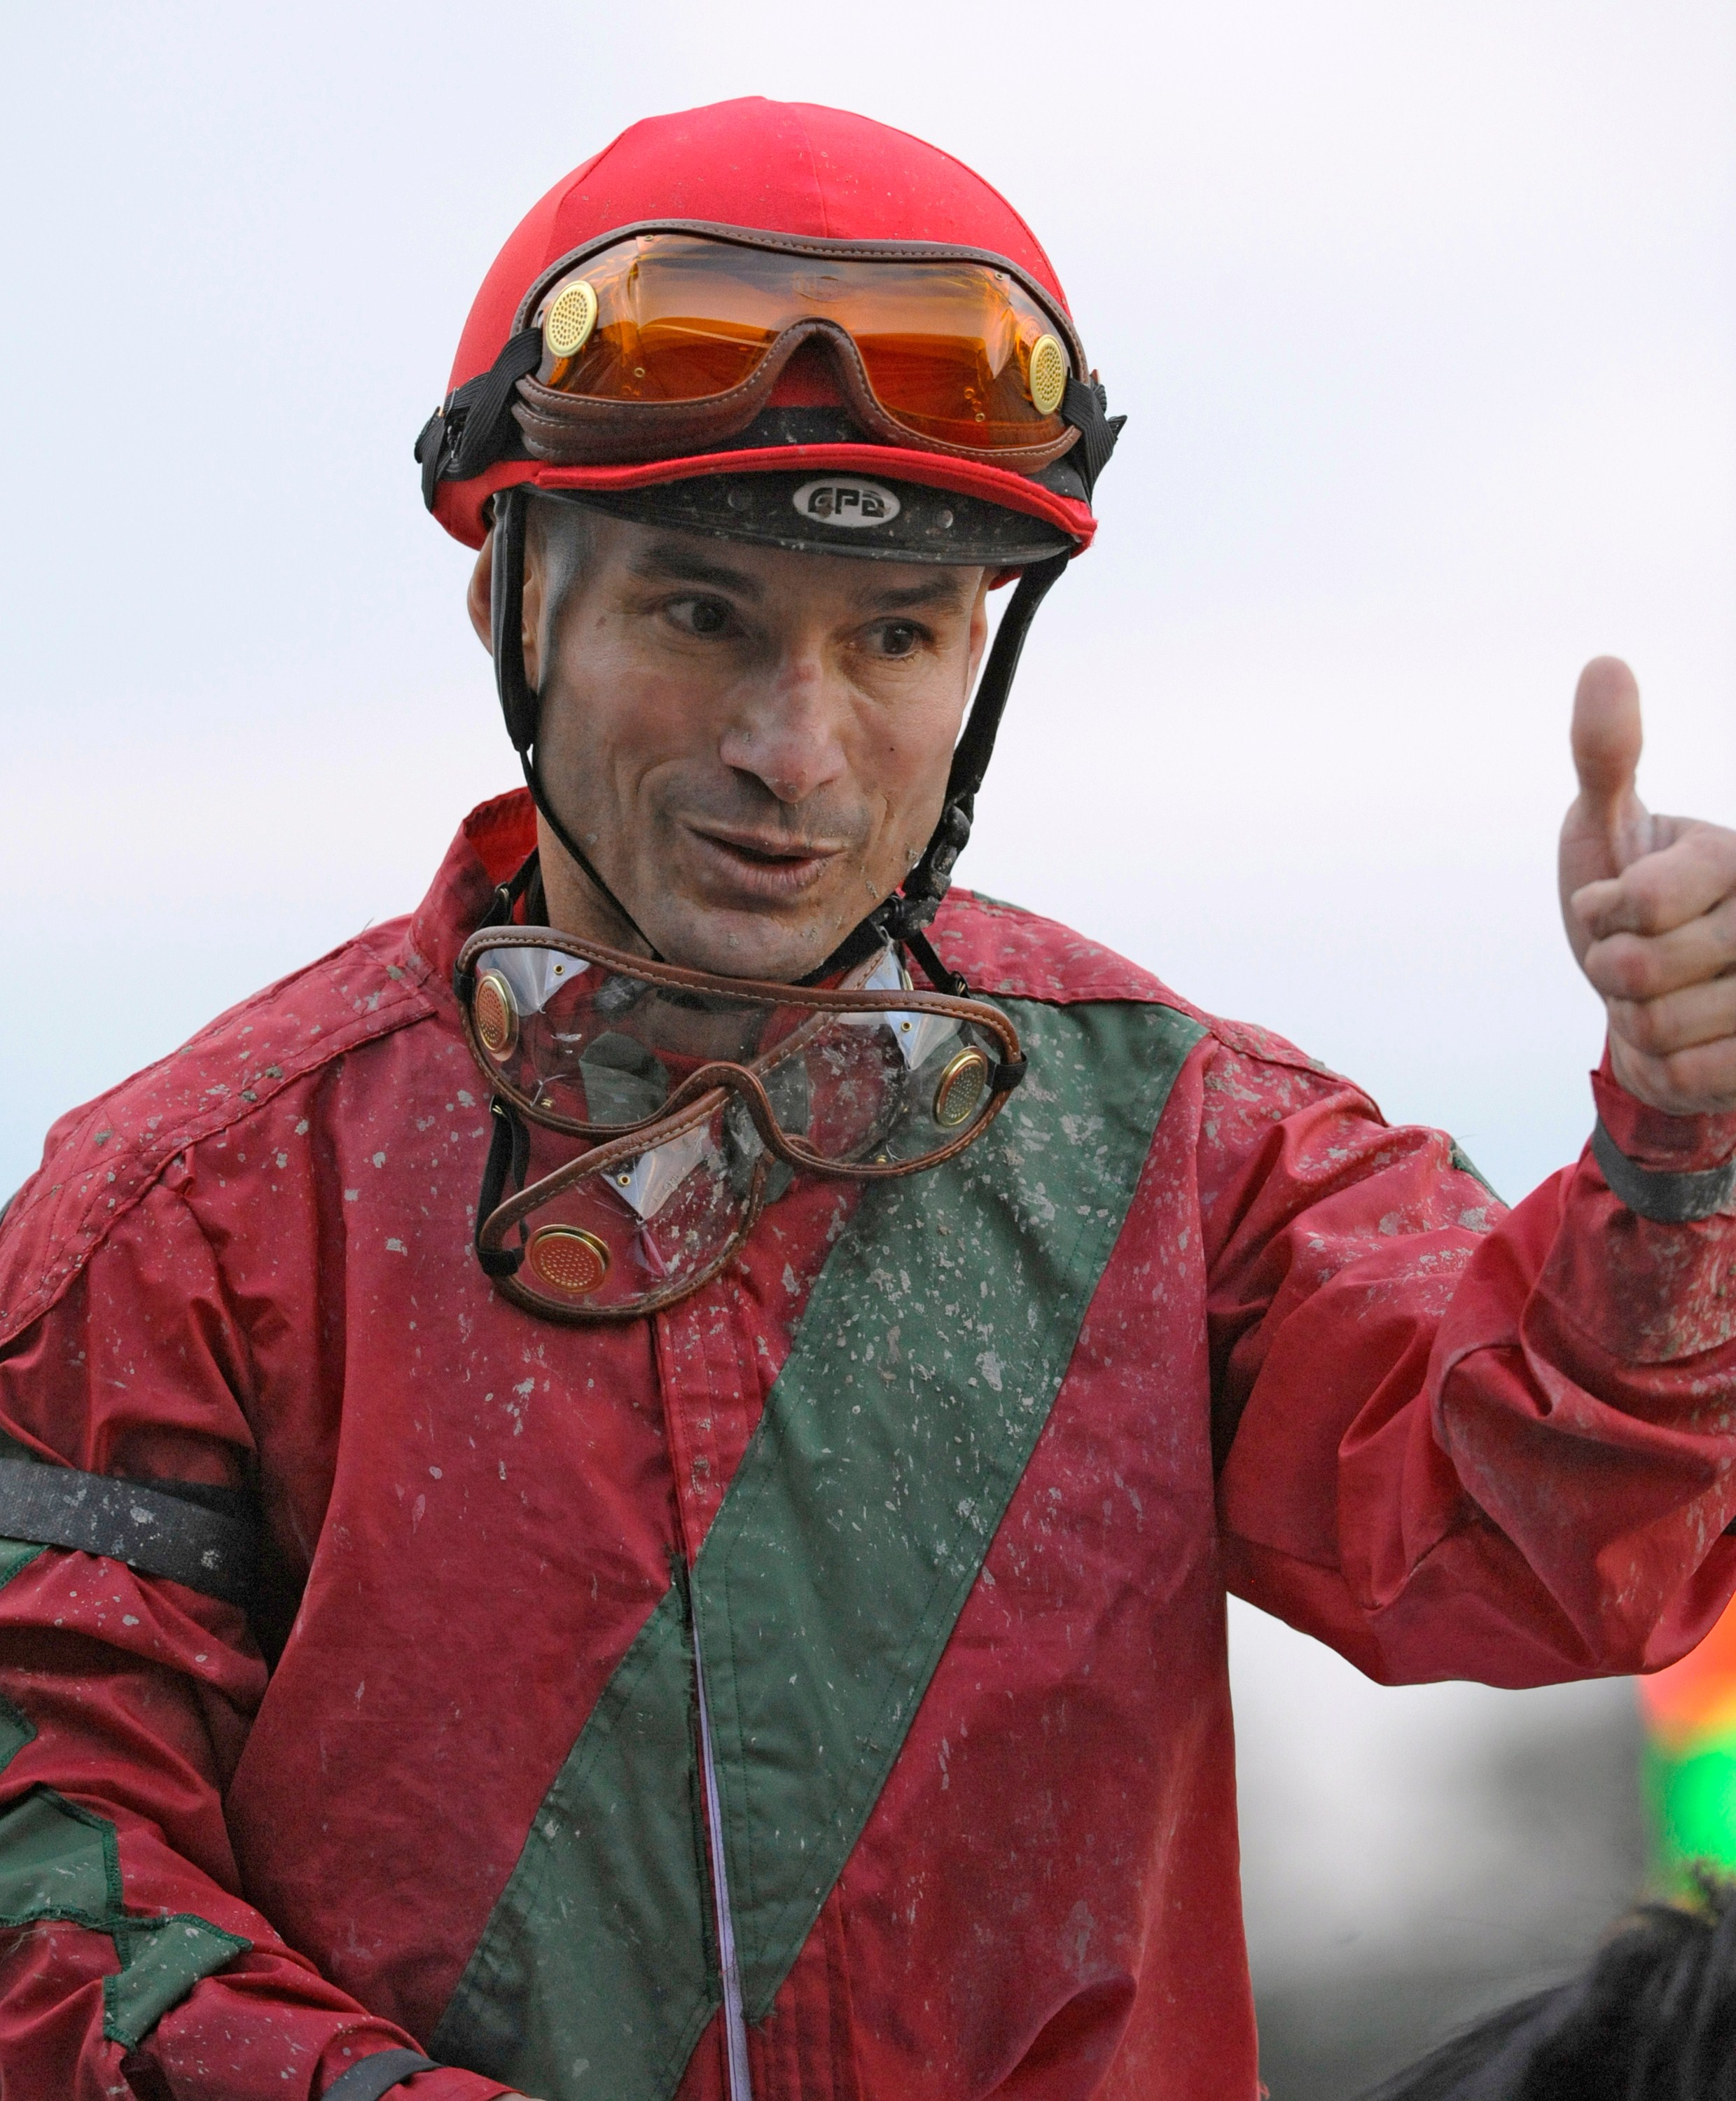 Alex Solis celebrates winning the 2011 Jockey Club Gold Cup at Belmont aboard Flat Out (Skip Dickstein)